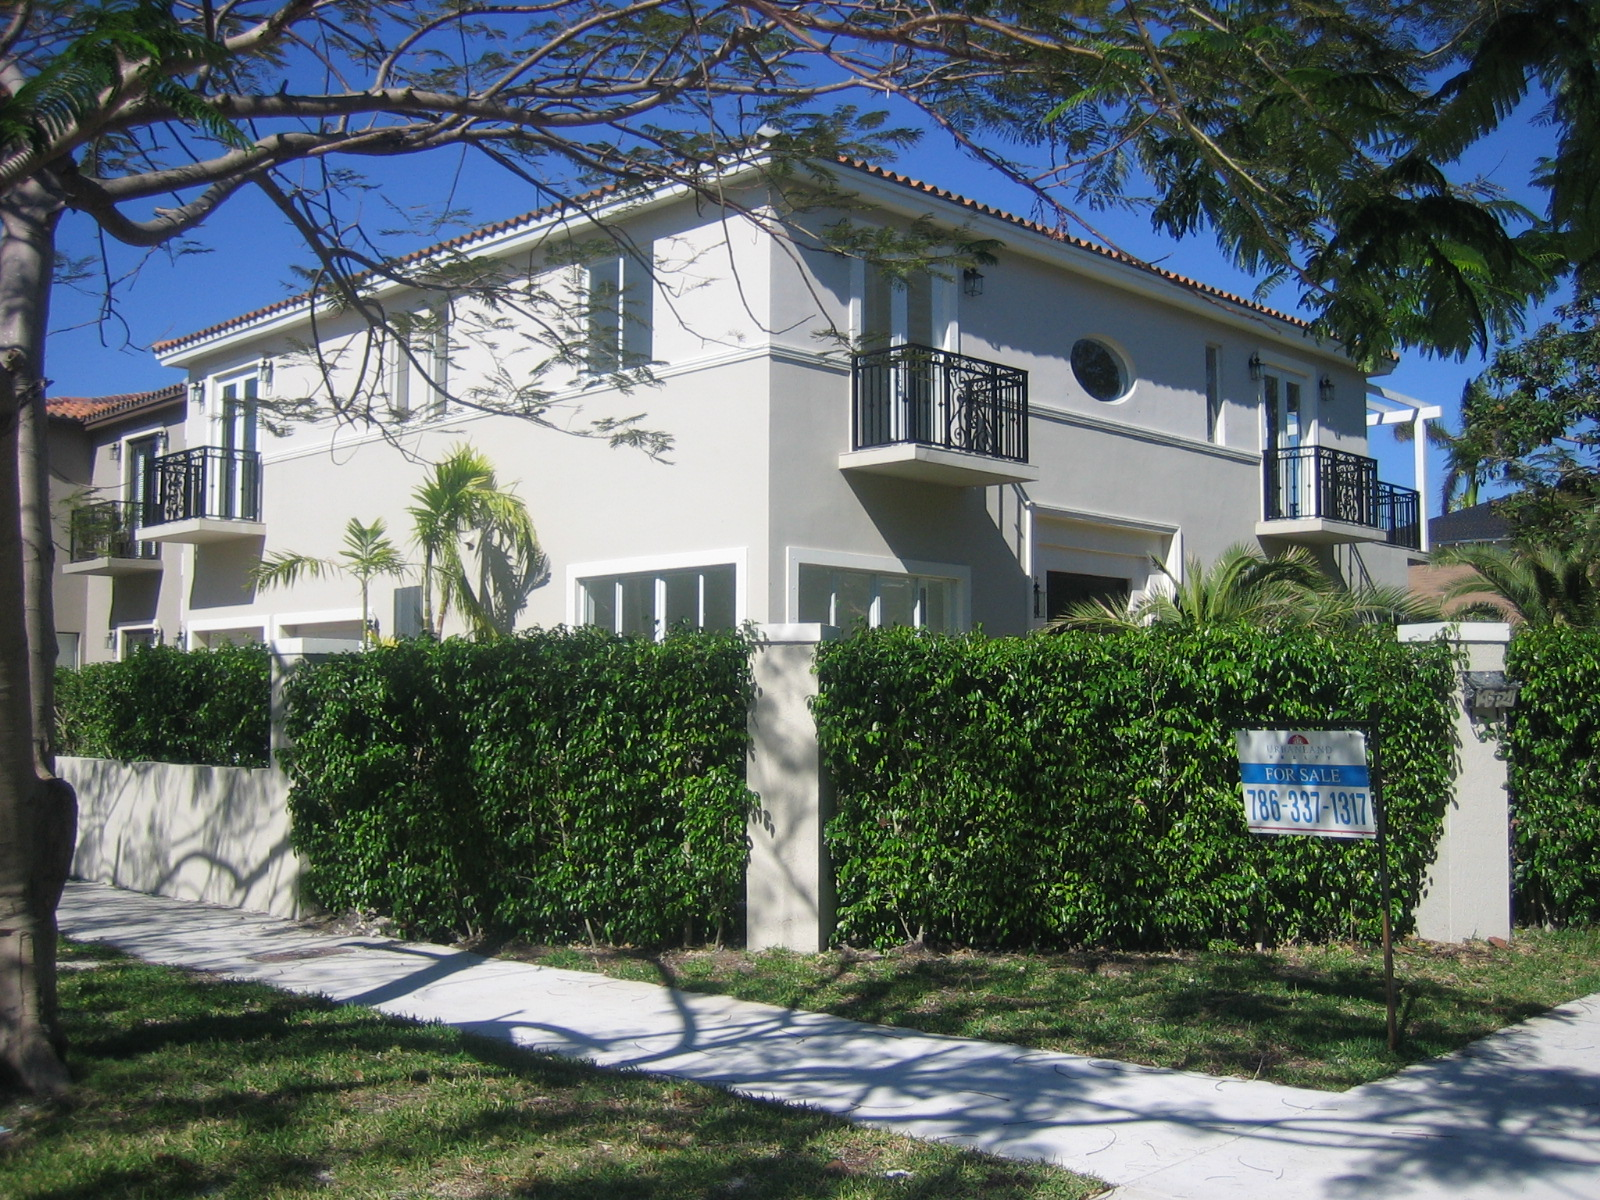 South Miami Ave Houses 2